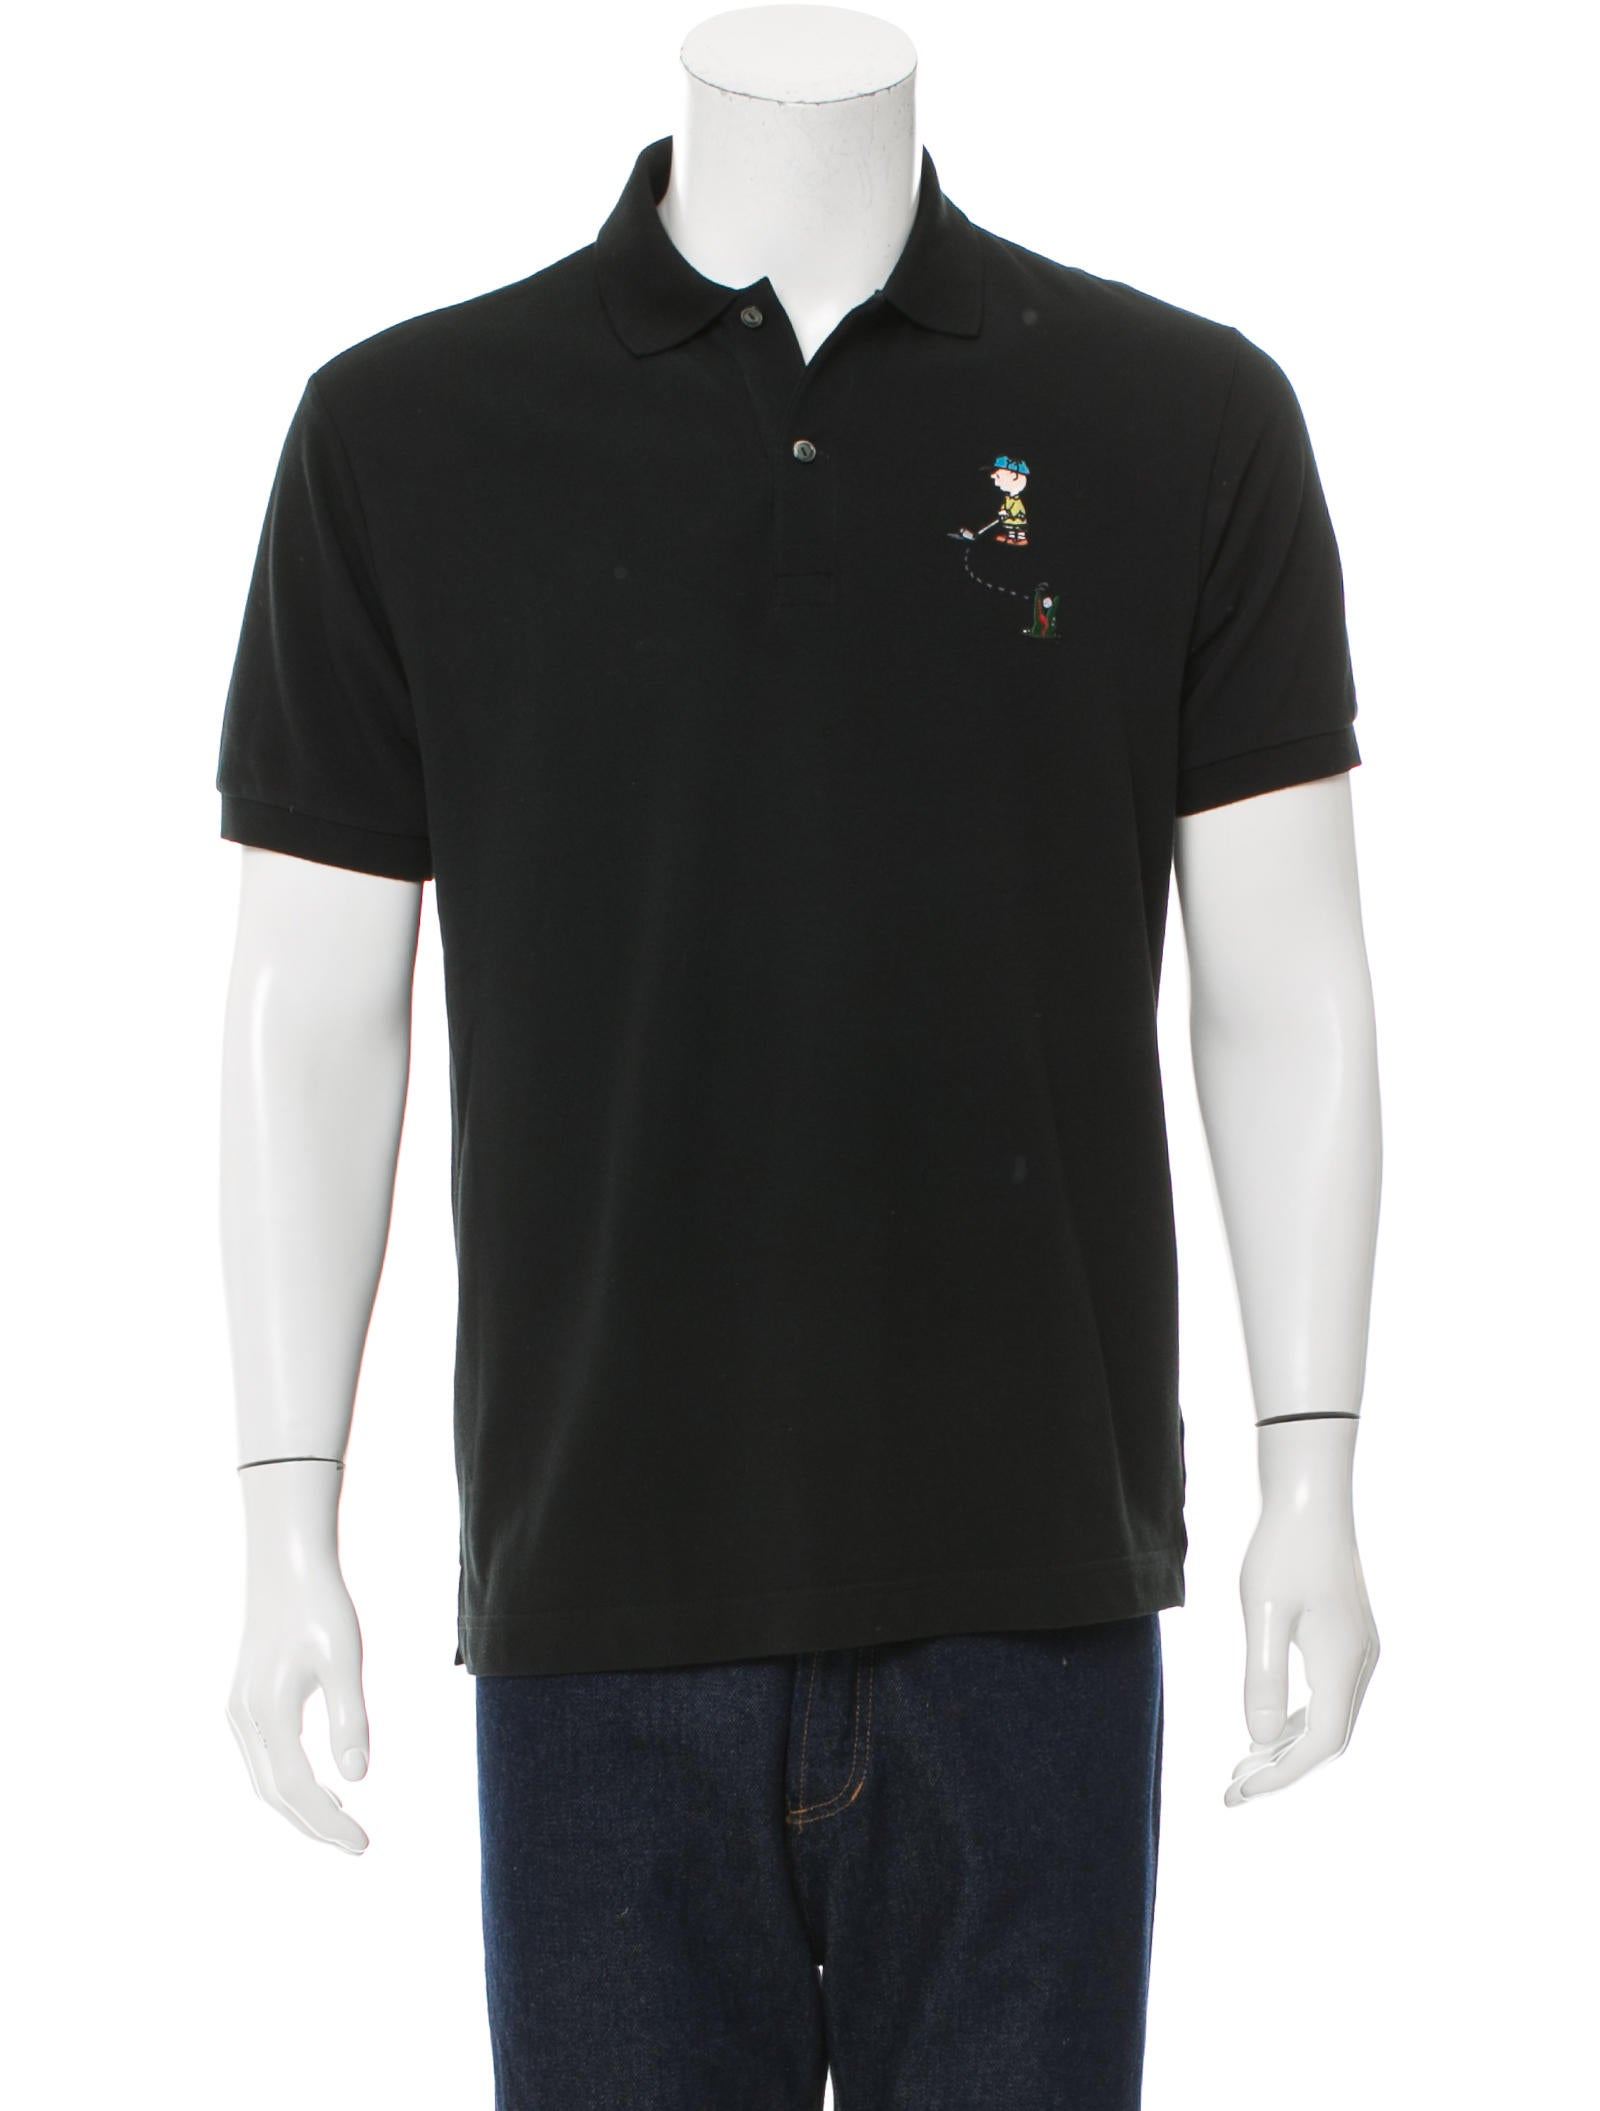 Lacoste embroidered polo shirt clothing wlcst20016 for Polo shirts with embroidery